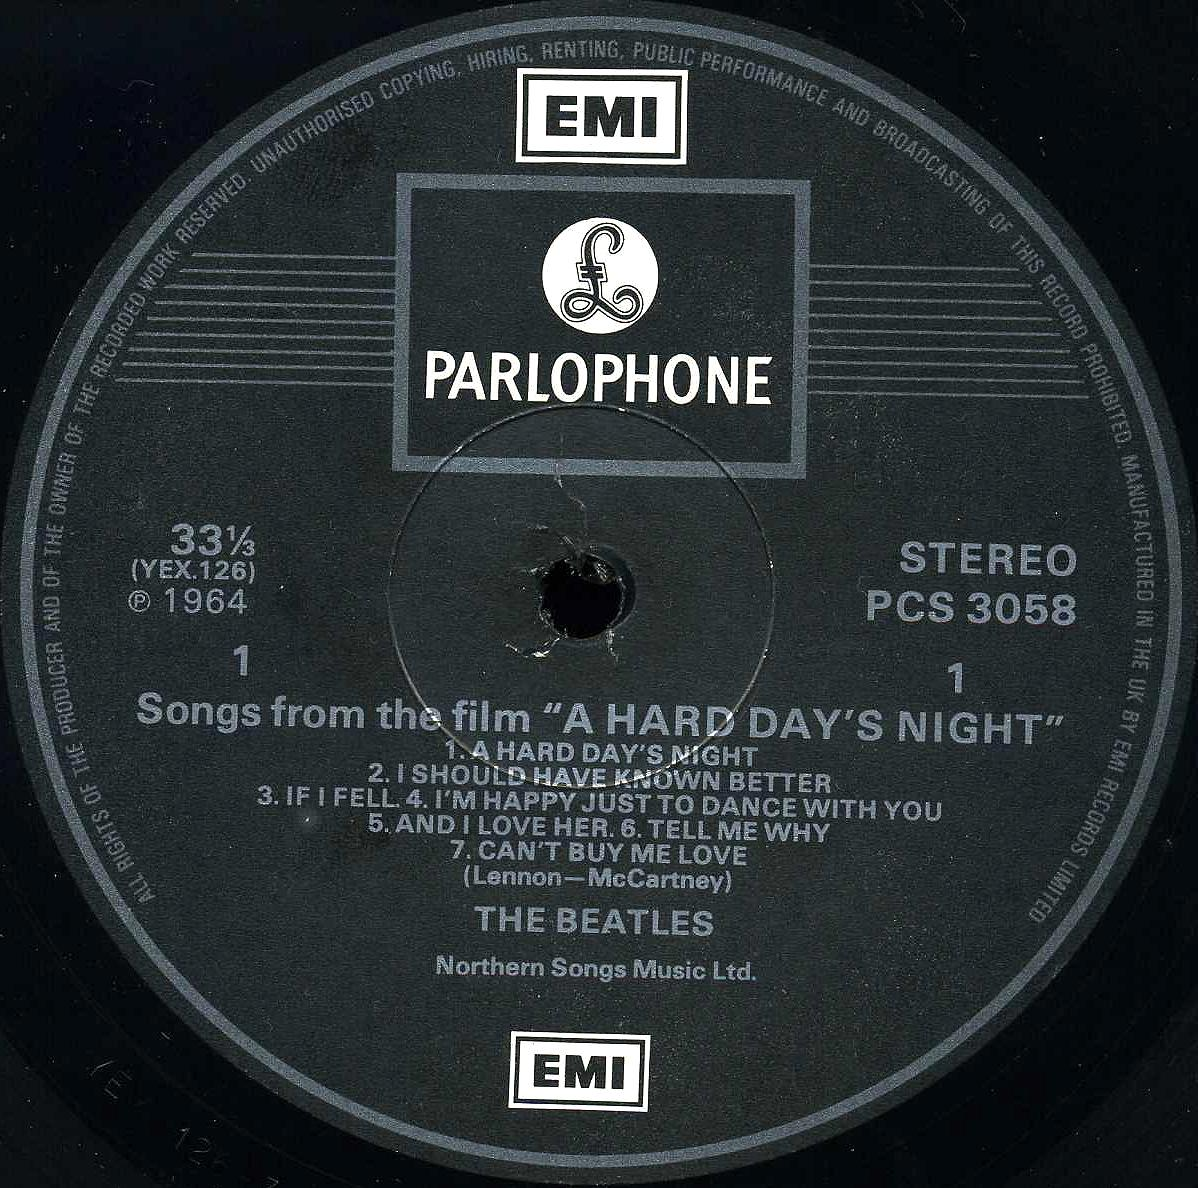 The Beatles Collection 187 Search Results 187 Pcs 3058